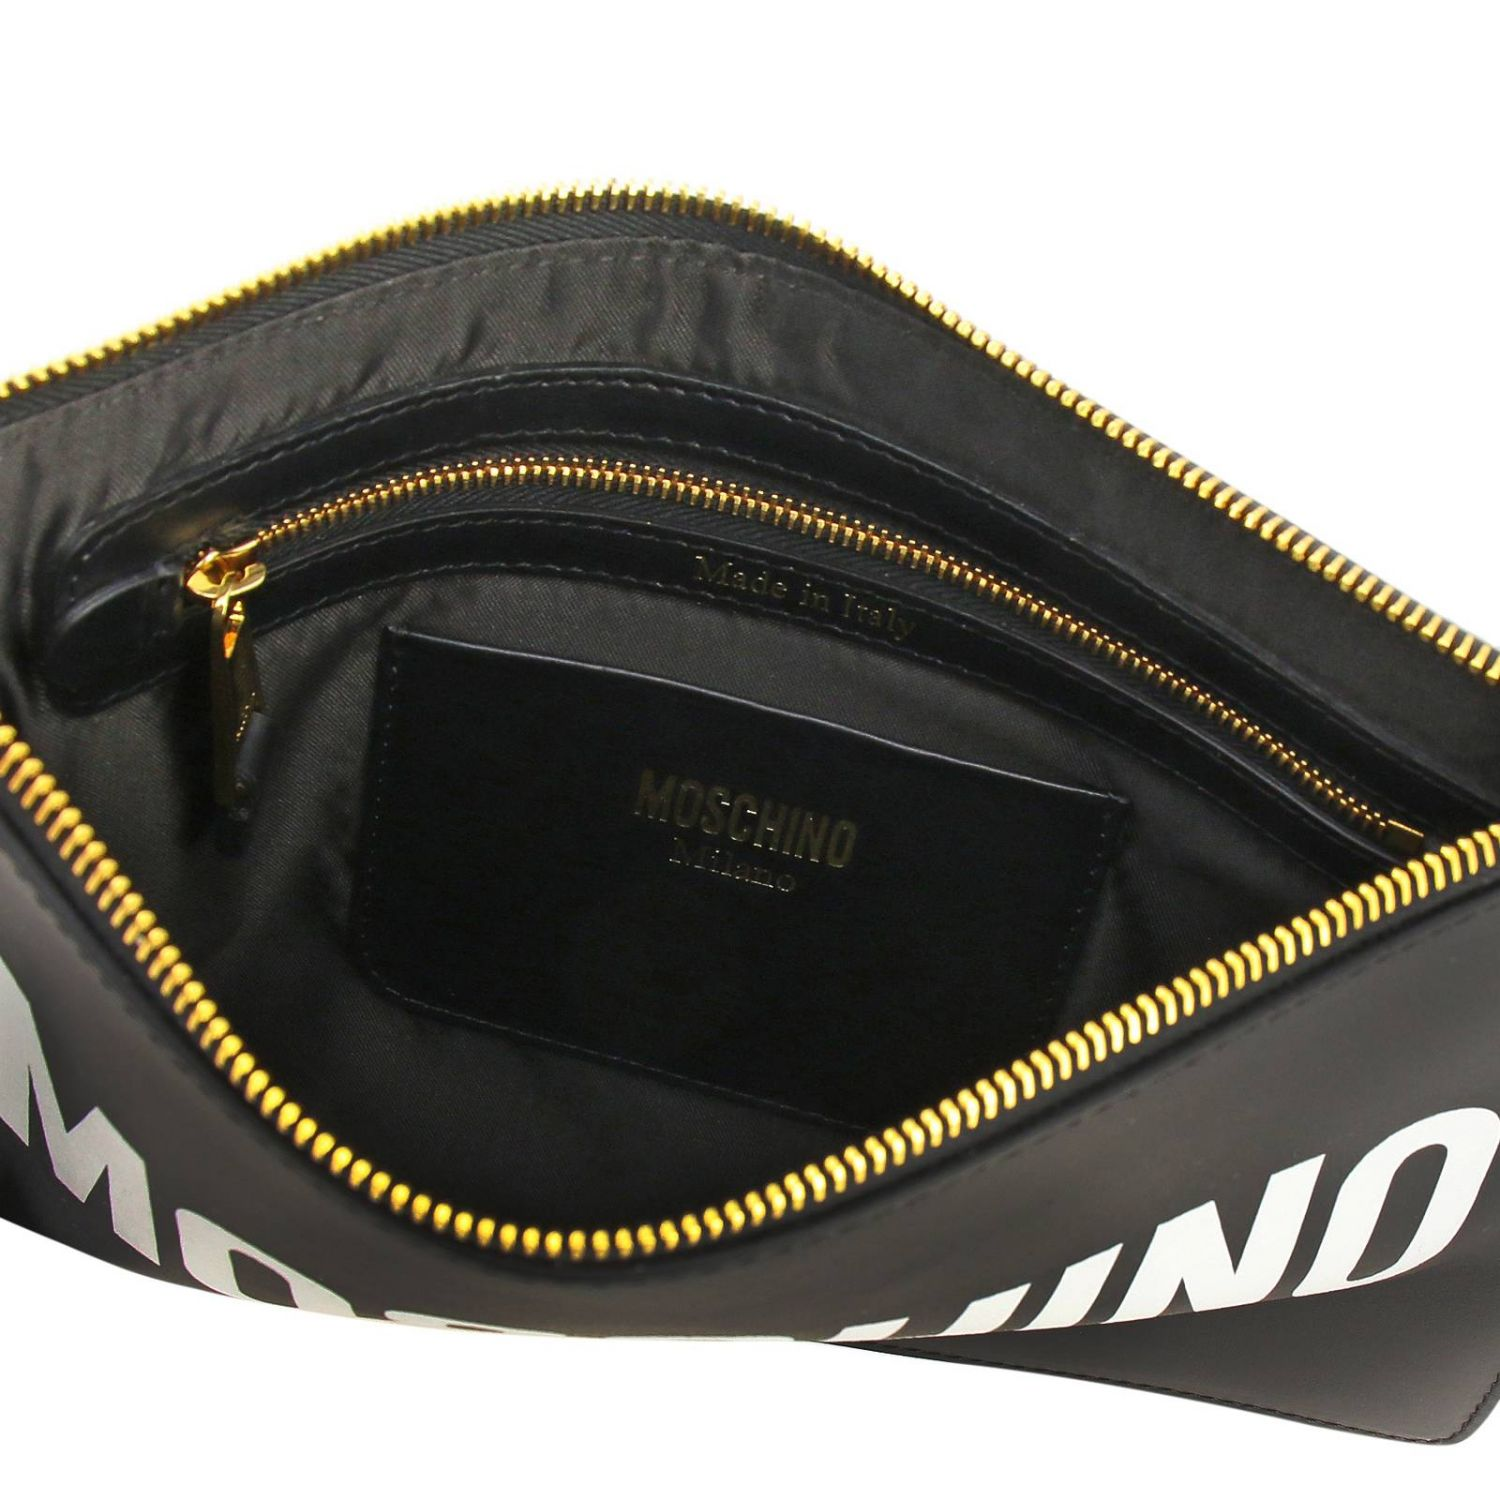 Shoulder bag women Moschino Couture black 5